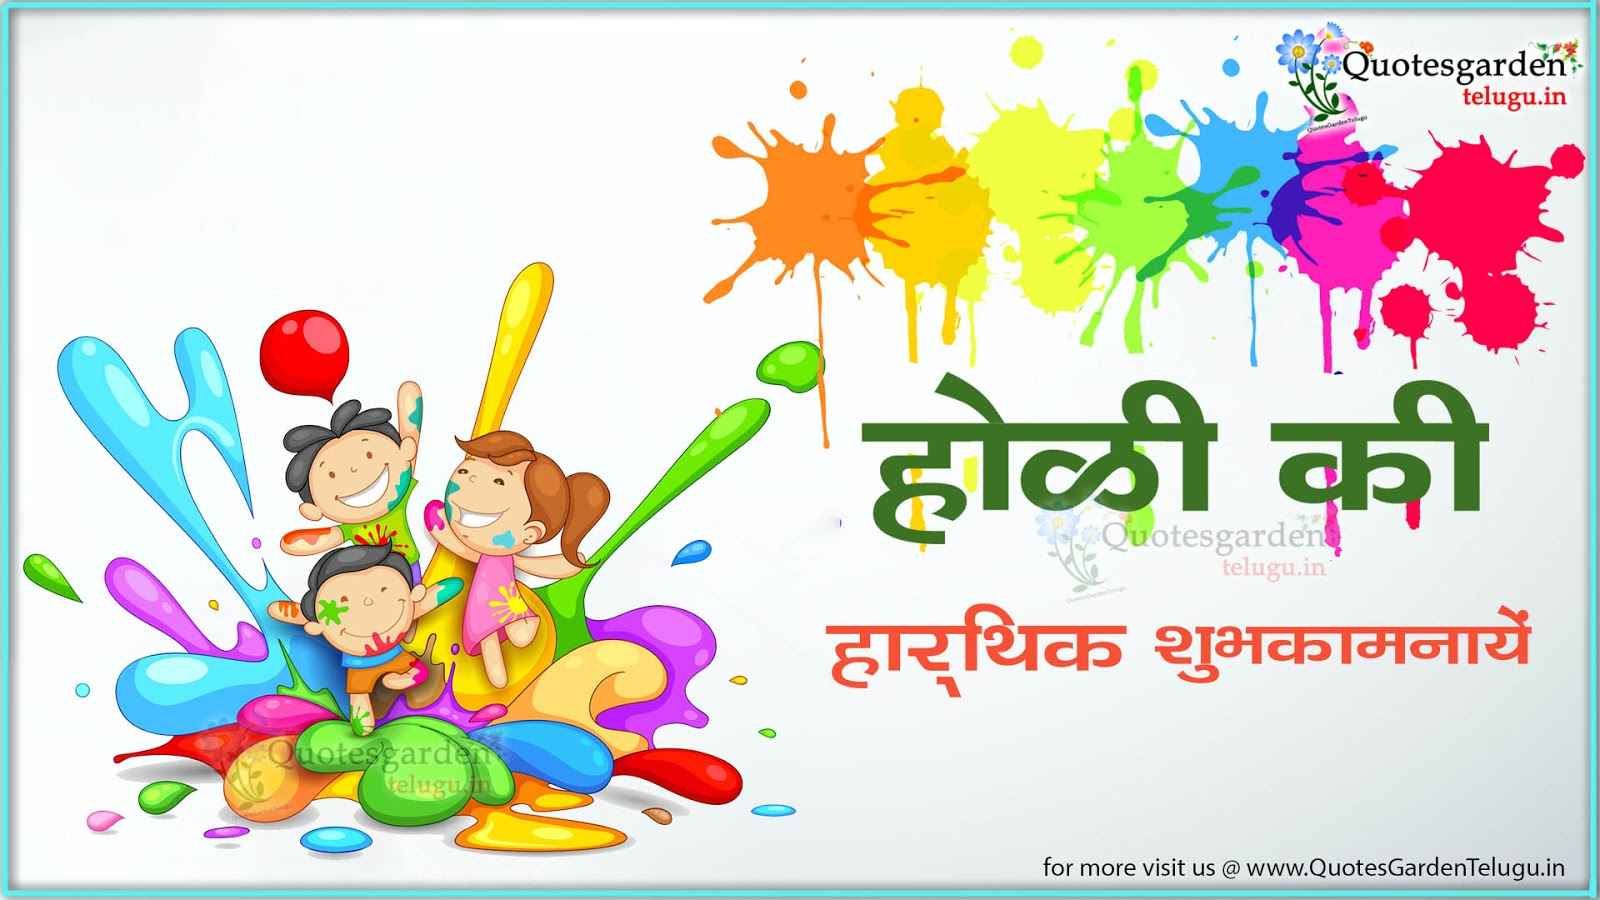 Happy holi greetings sms wishes messages in hindi quotes garden happy holi greetings sms wishes messages in hindi m4hsunfo